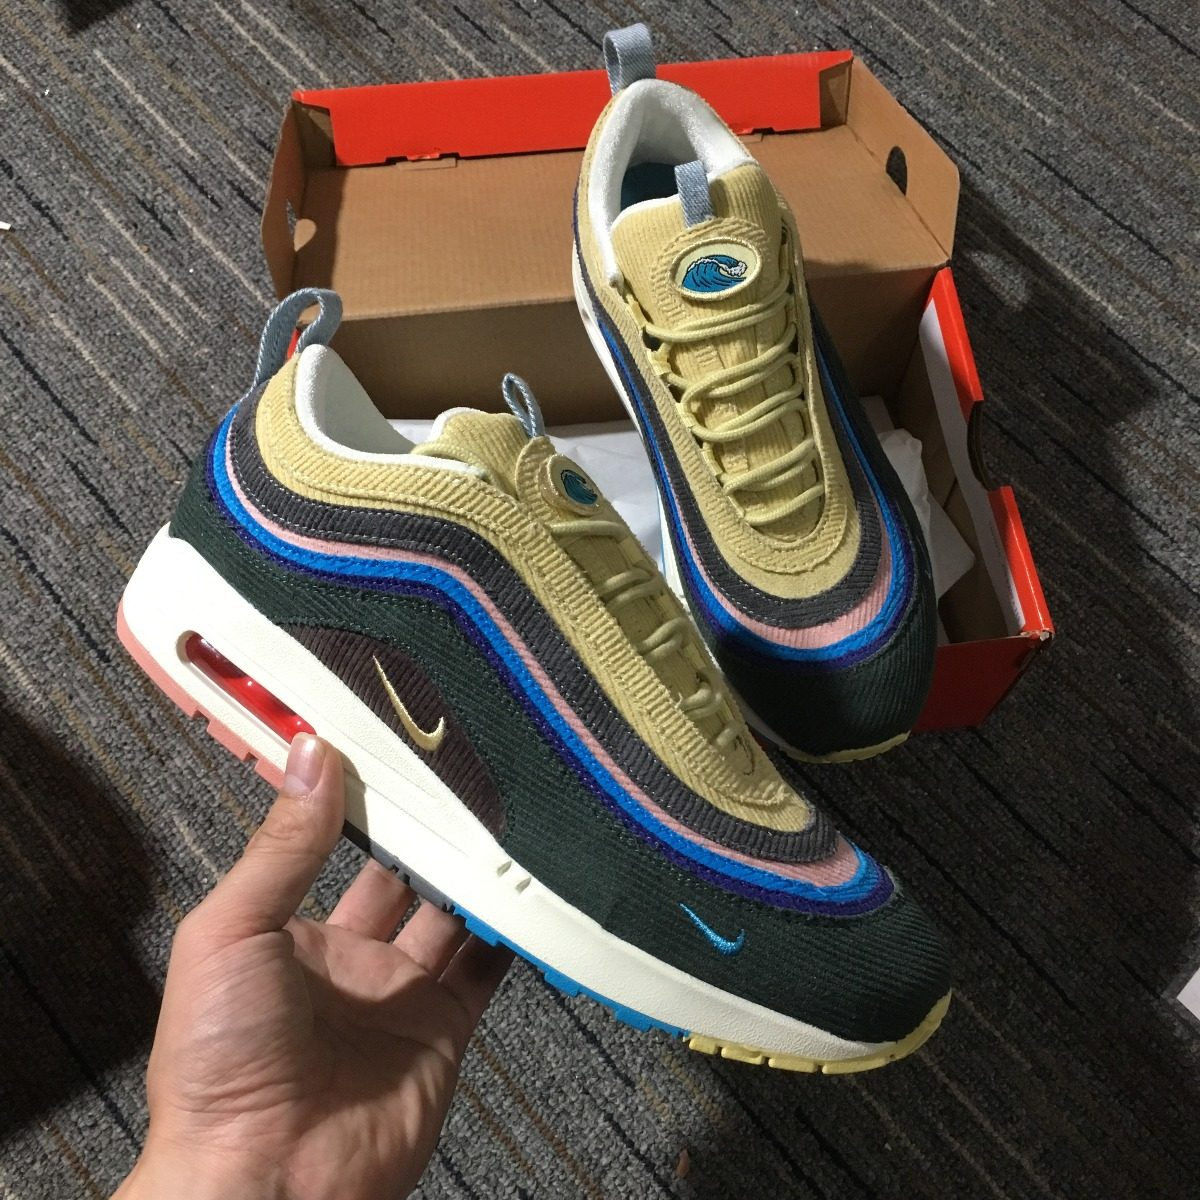 Nike Al 97 36 45 Max Sw Air Sean 1 Wotherspoontallas oCrdxBe